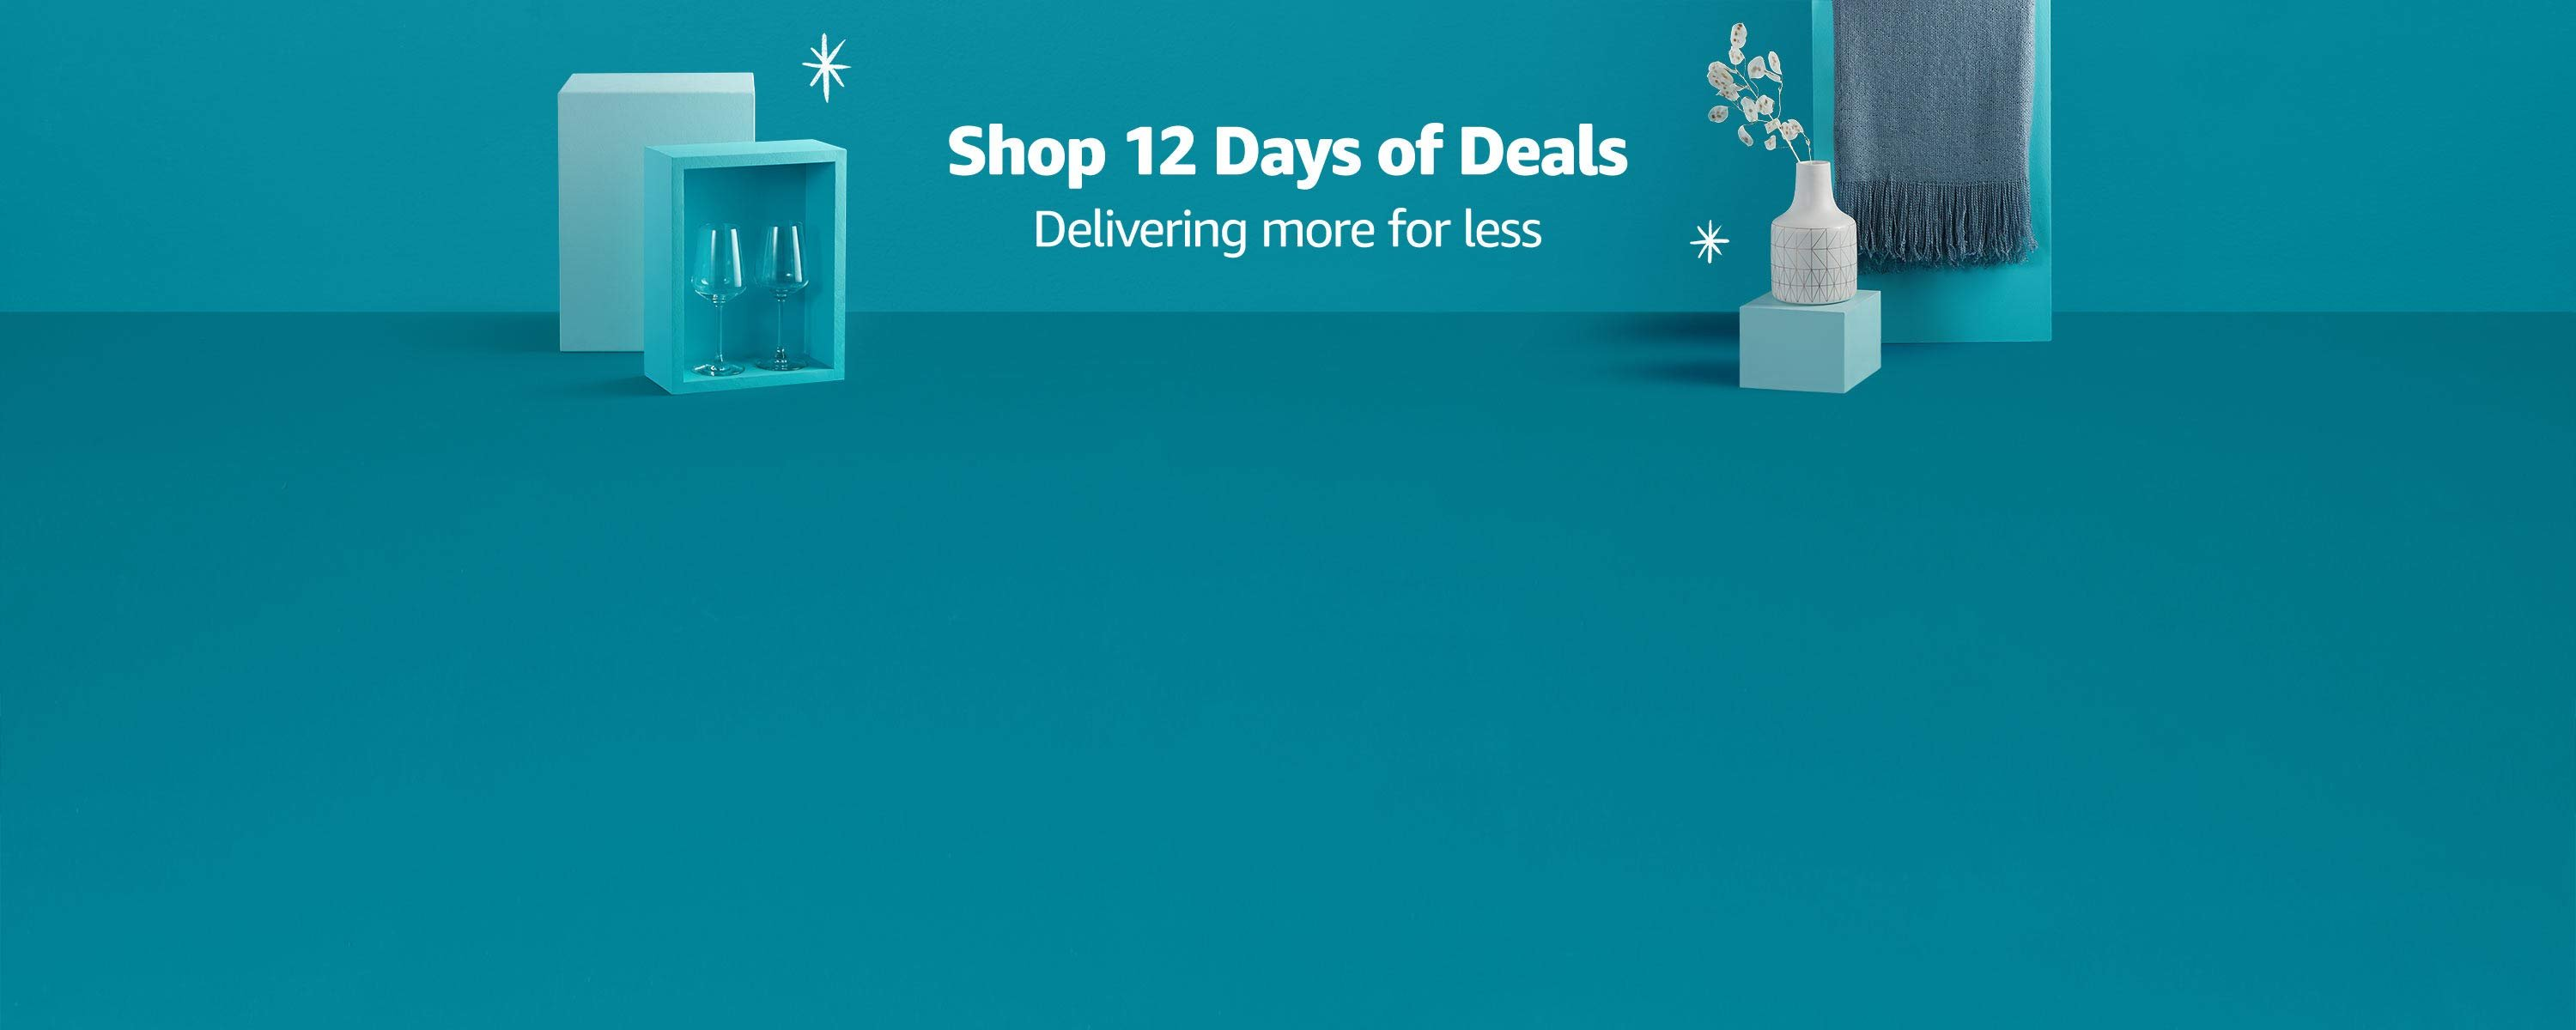 Amazon 12 days of deals